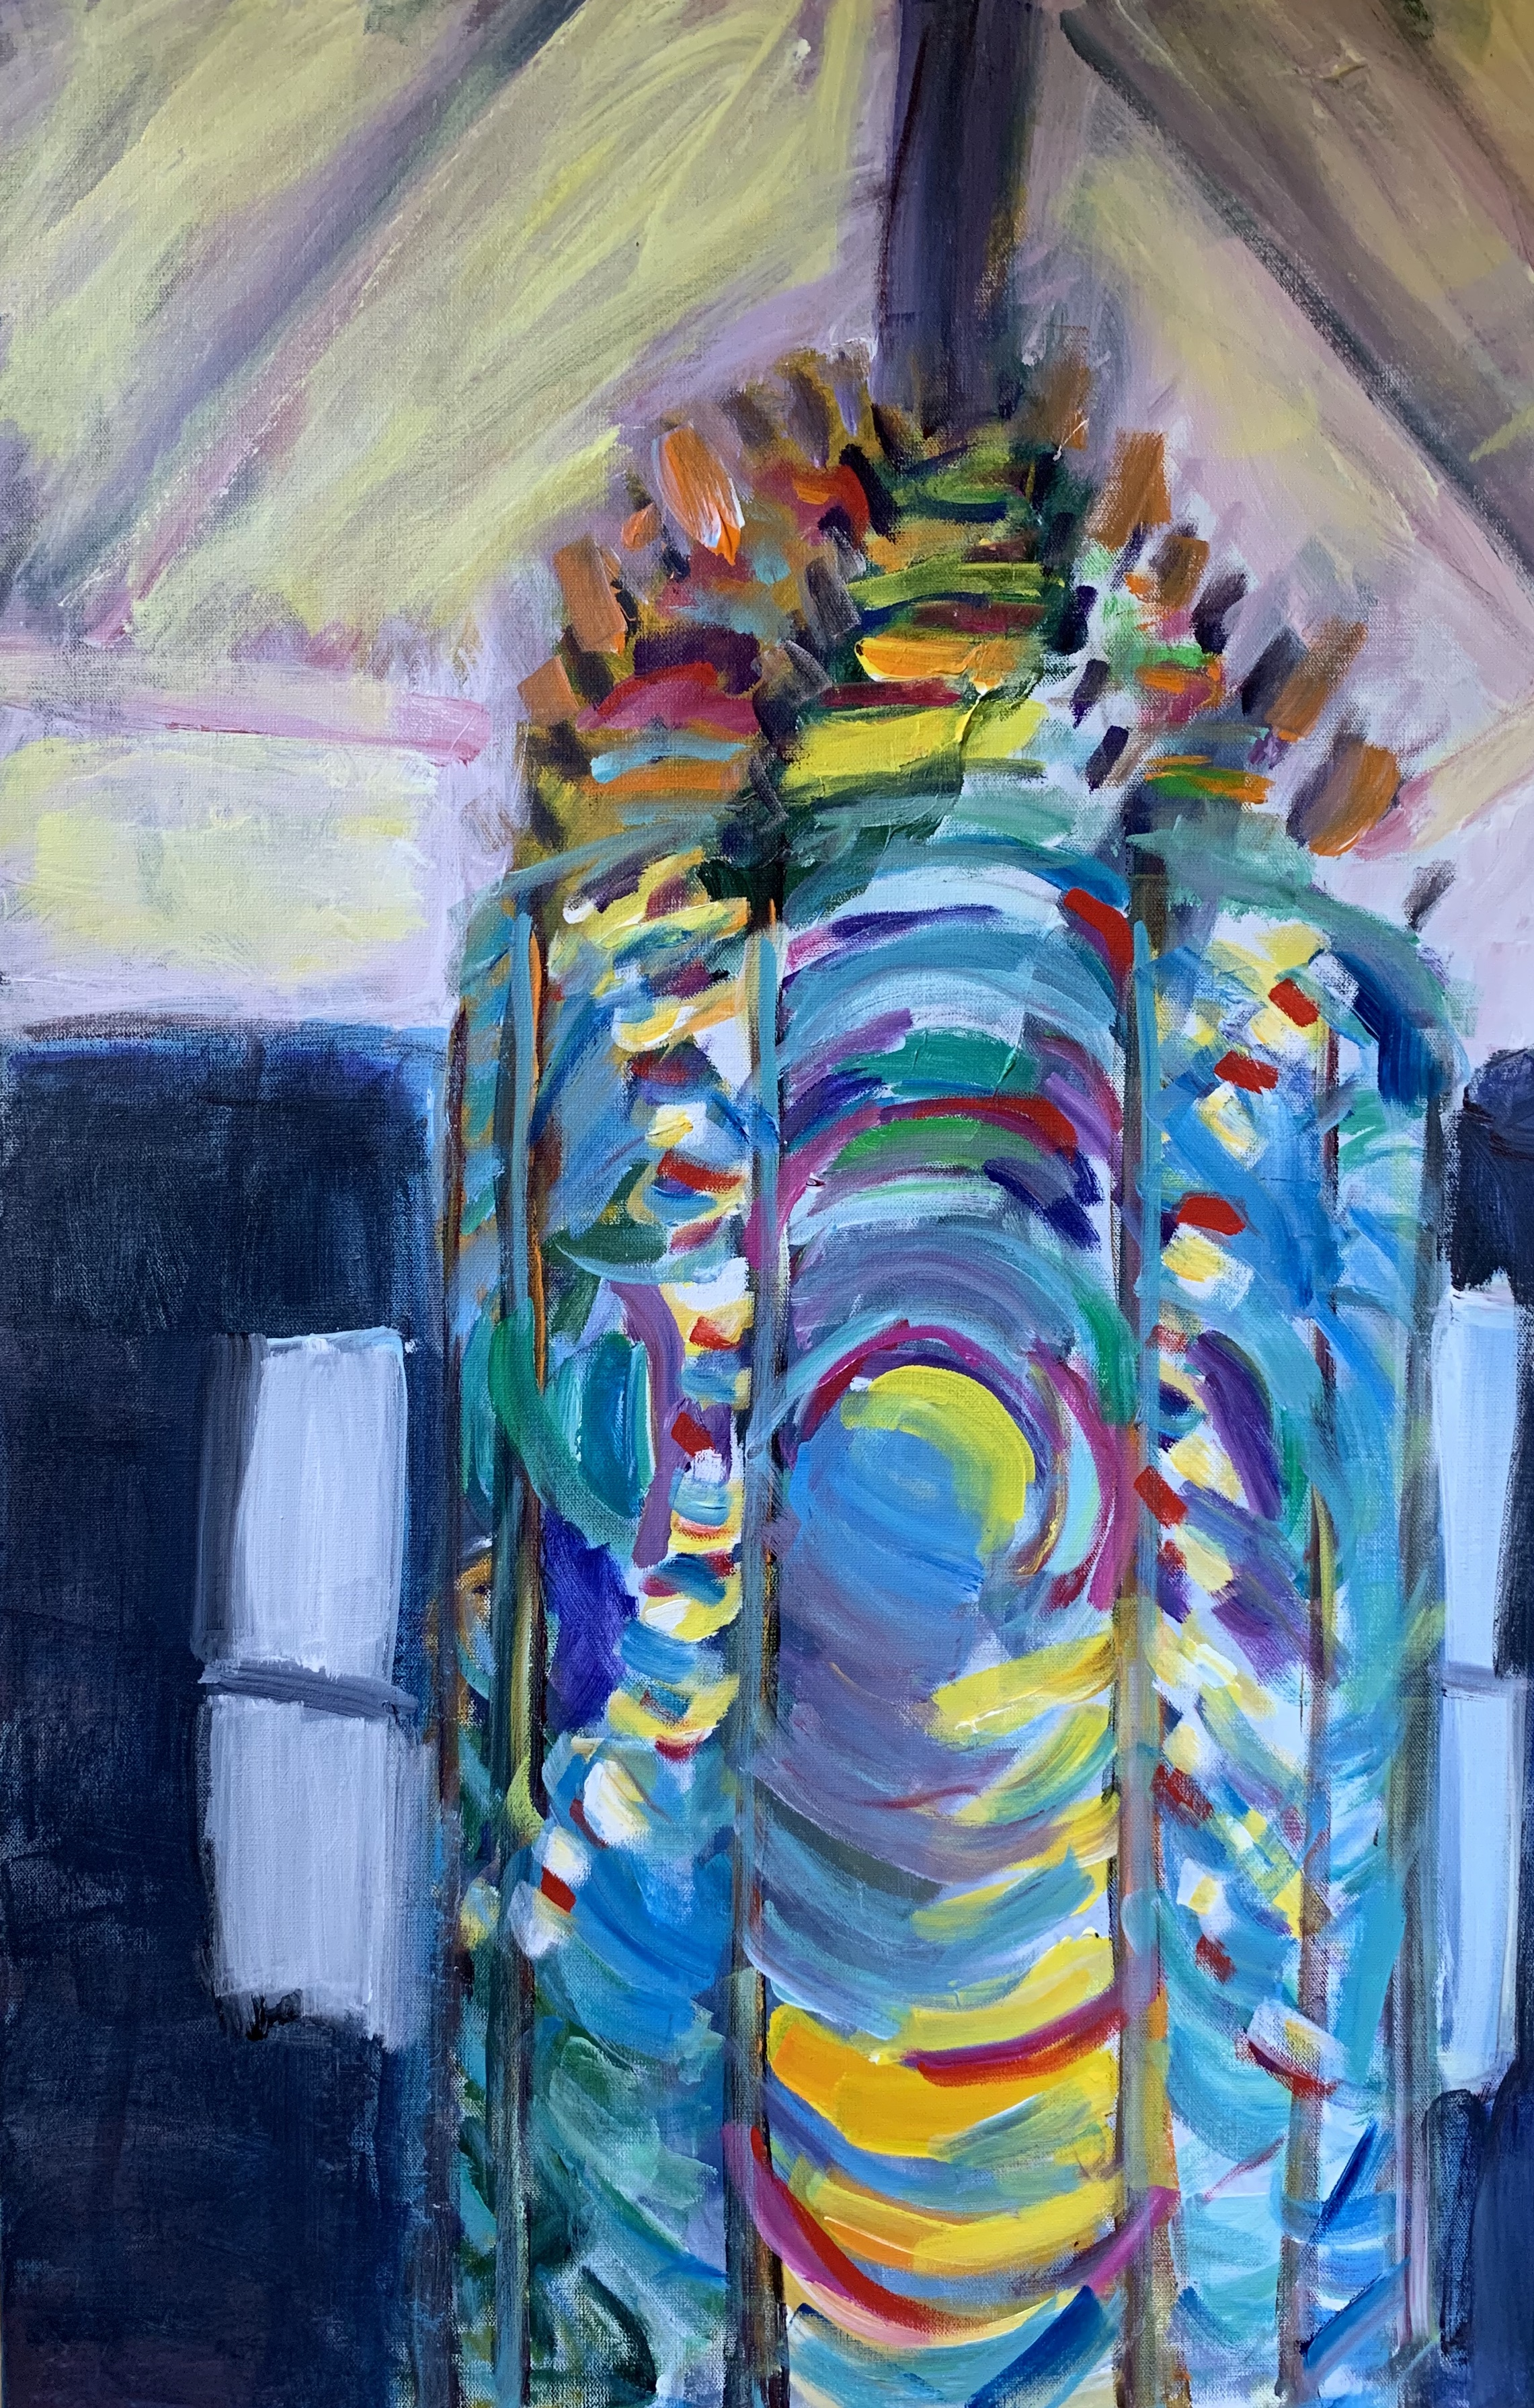 Lighthouse Prism, 36 x 24